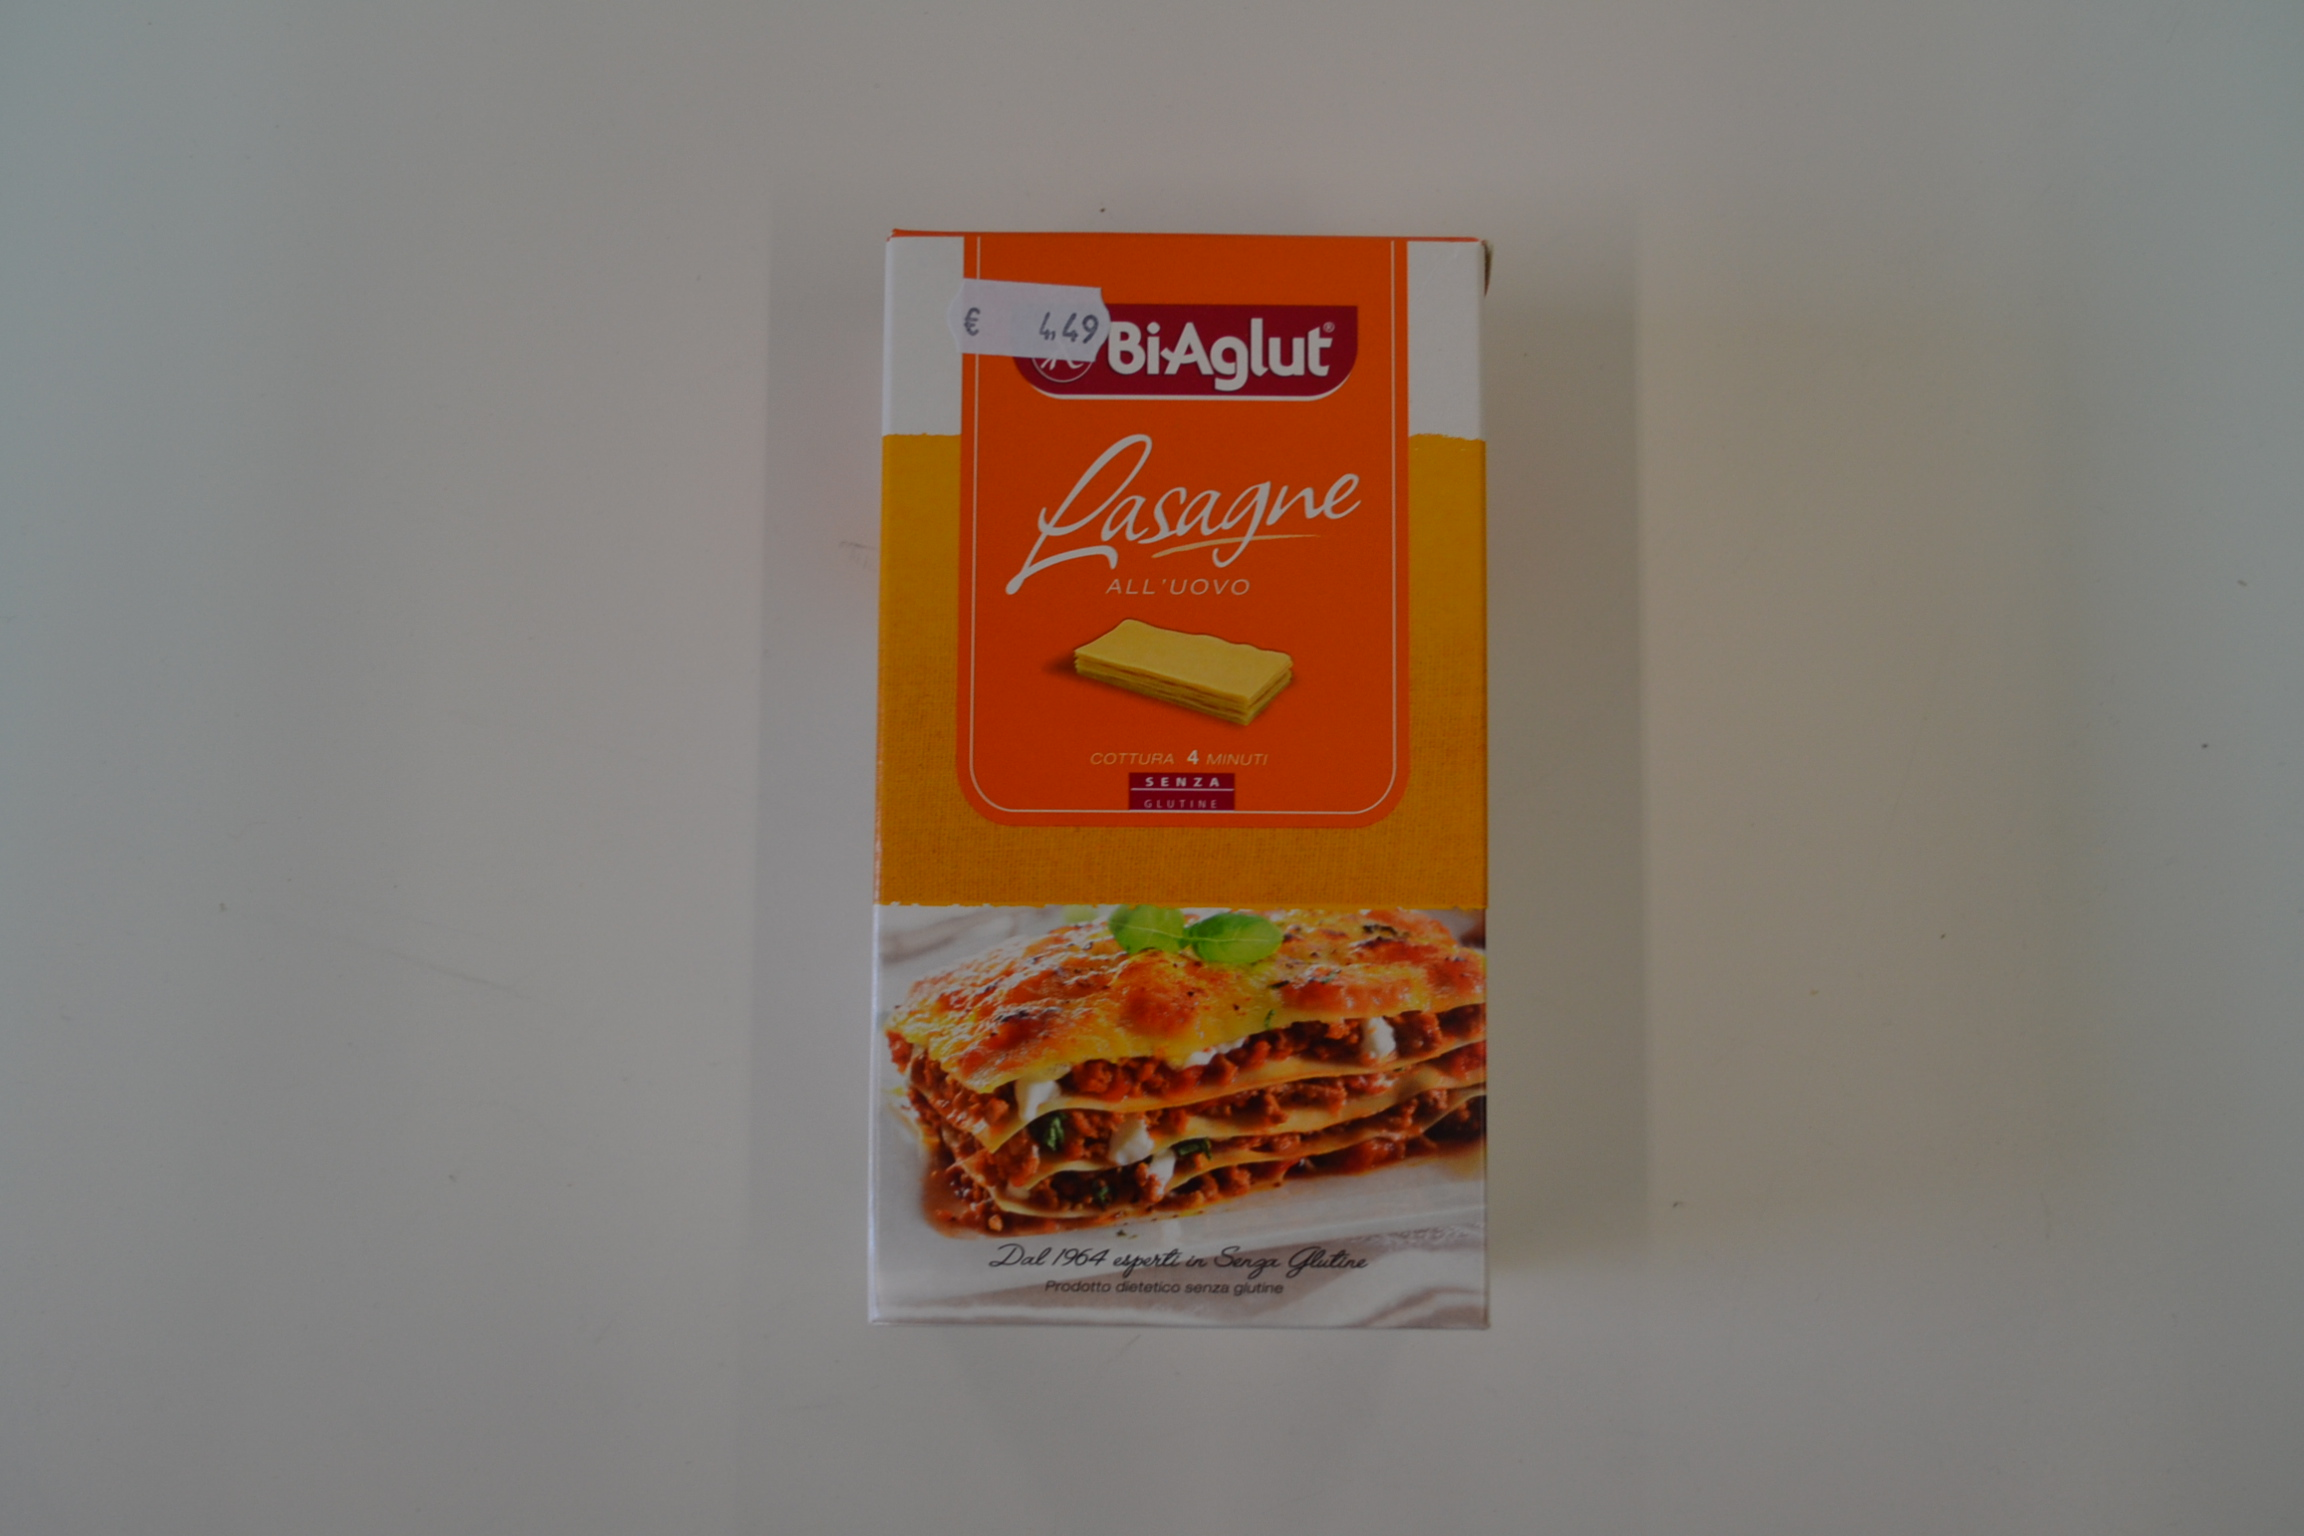 Lasagne all'uovo BIAGLUT € 4,49